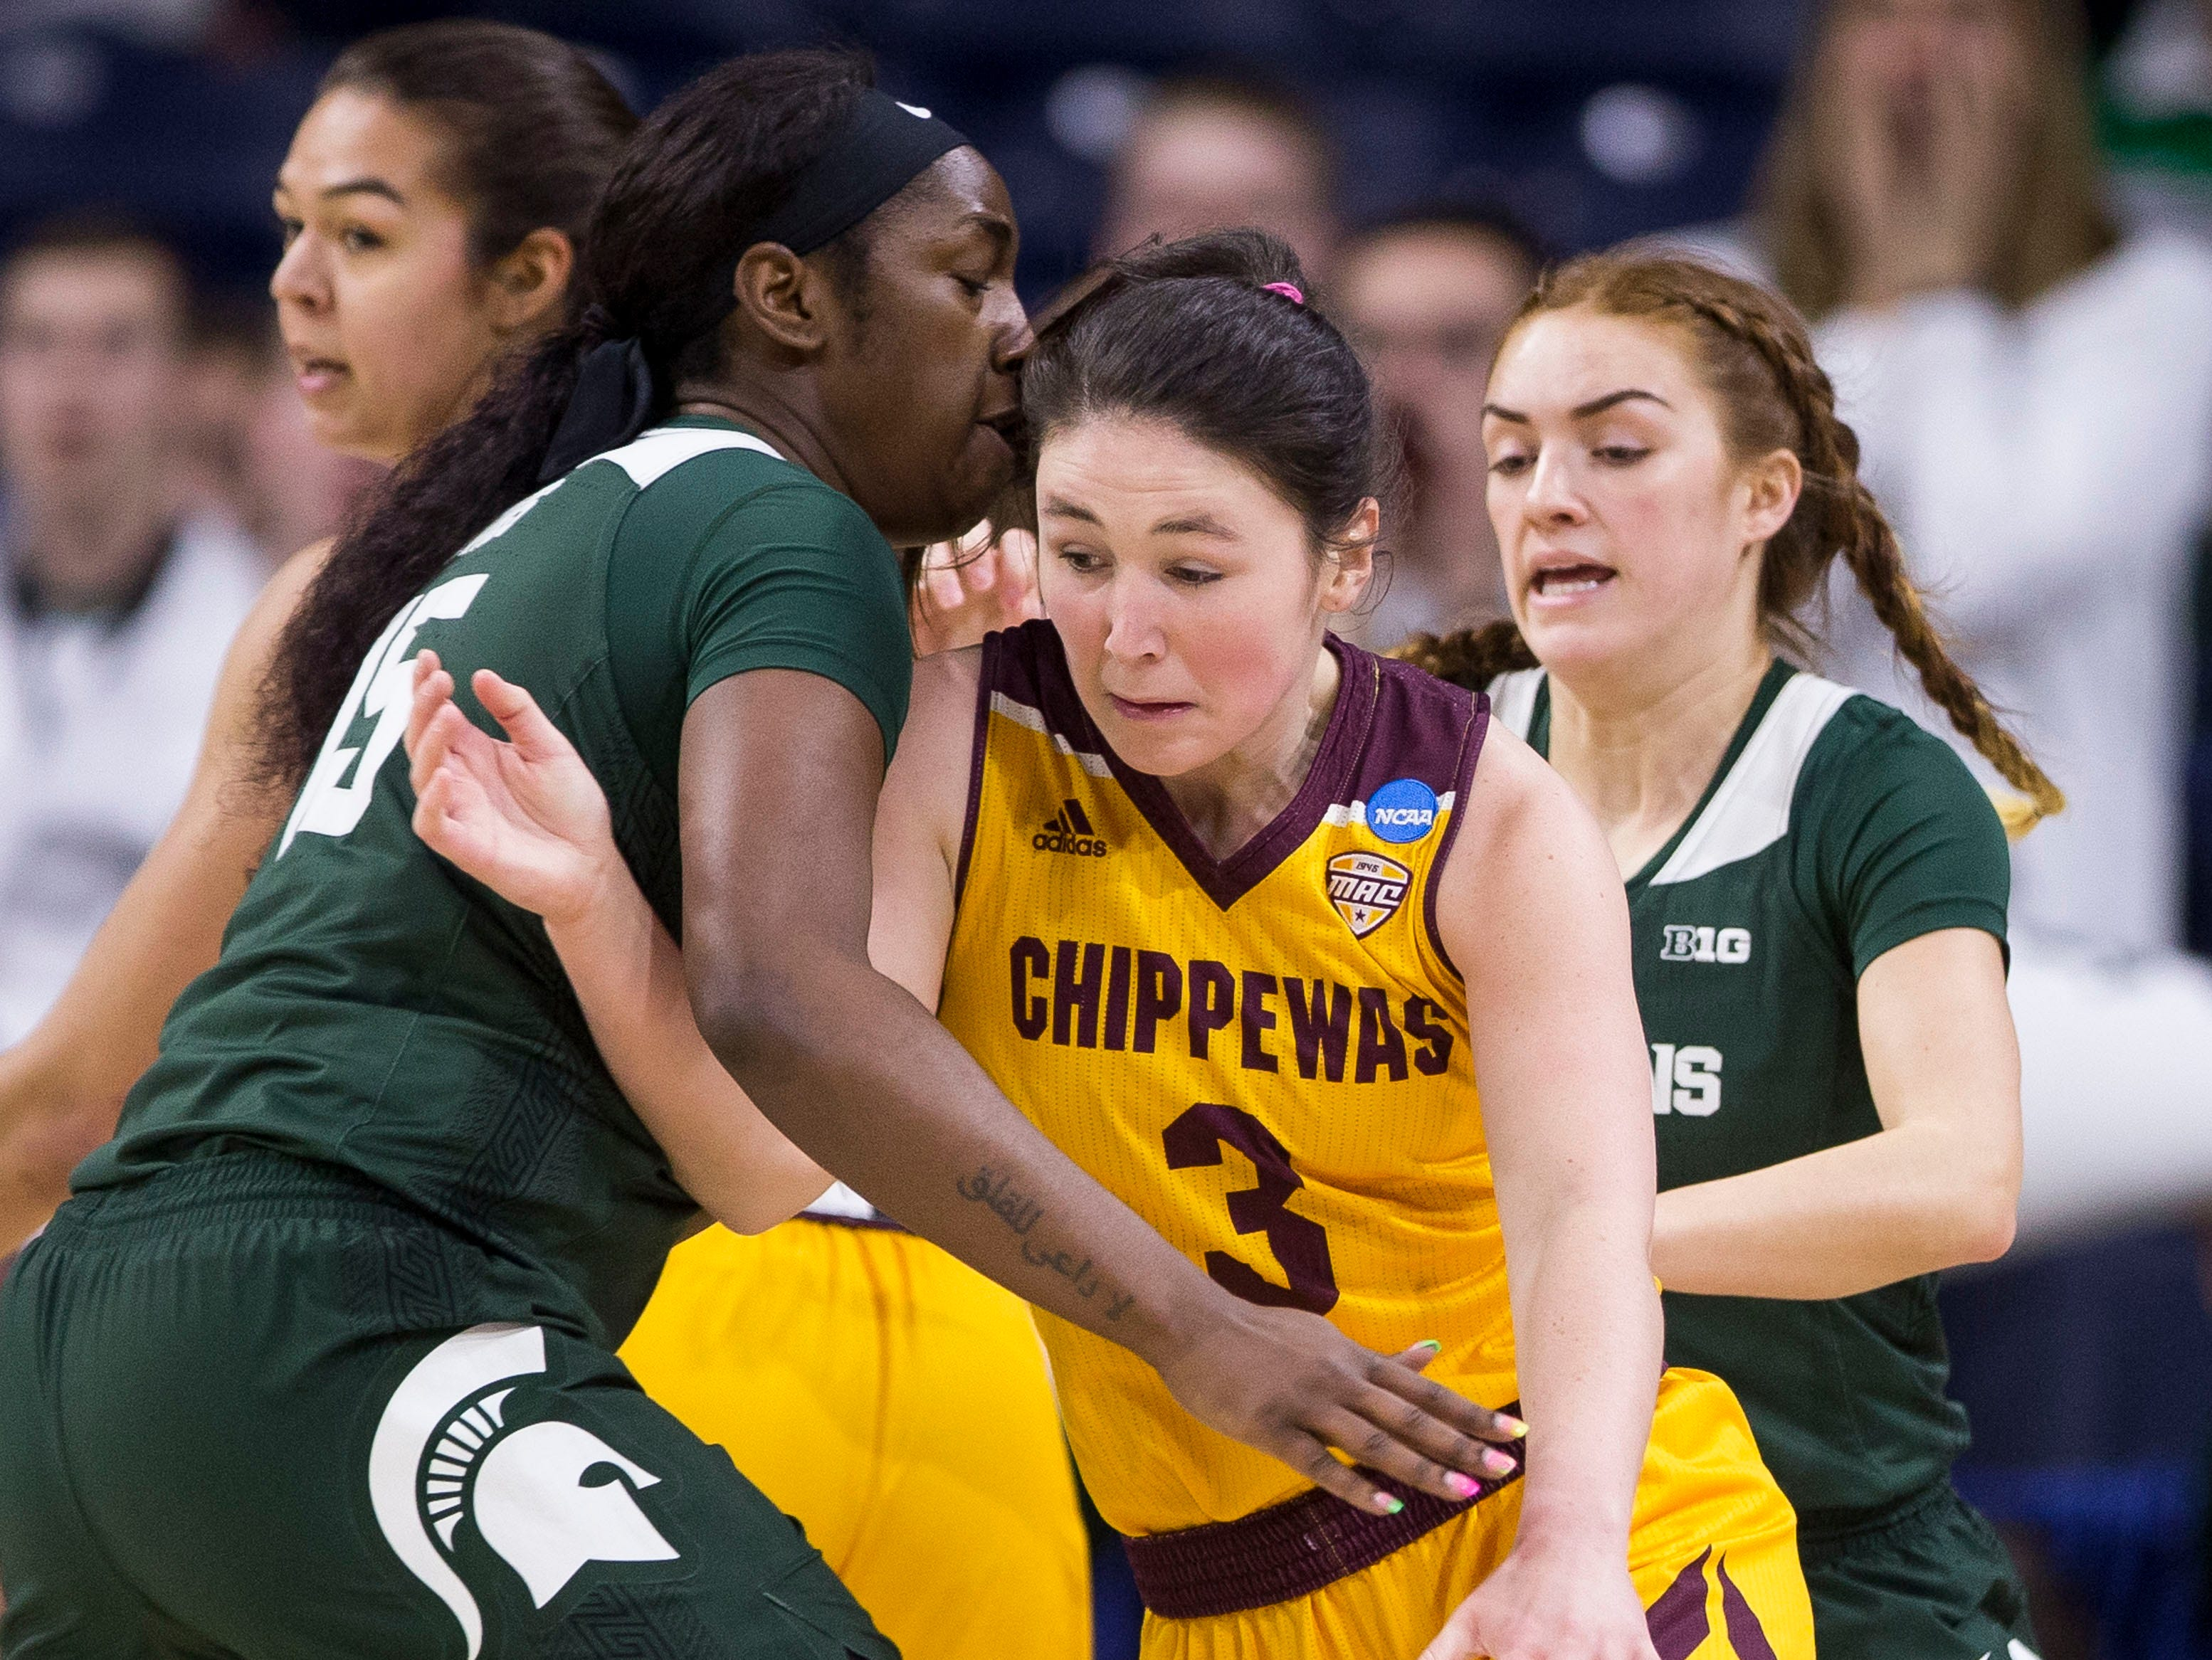 Central Michigan's Presley Hudson (3) moves between Michigan State's Victoria Gaines, left, and Taryn McCutcheon during a first-round game in the NCAA women's college basketball tournament in South Bend, Ind., Saturday, March 23, 2019. (AP Photo/Robert Franklin)